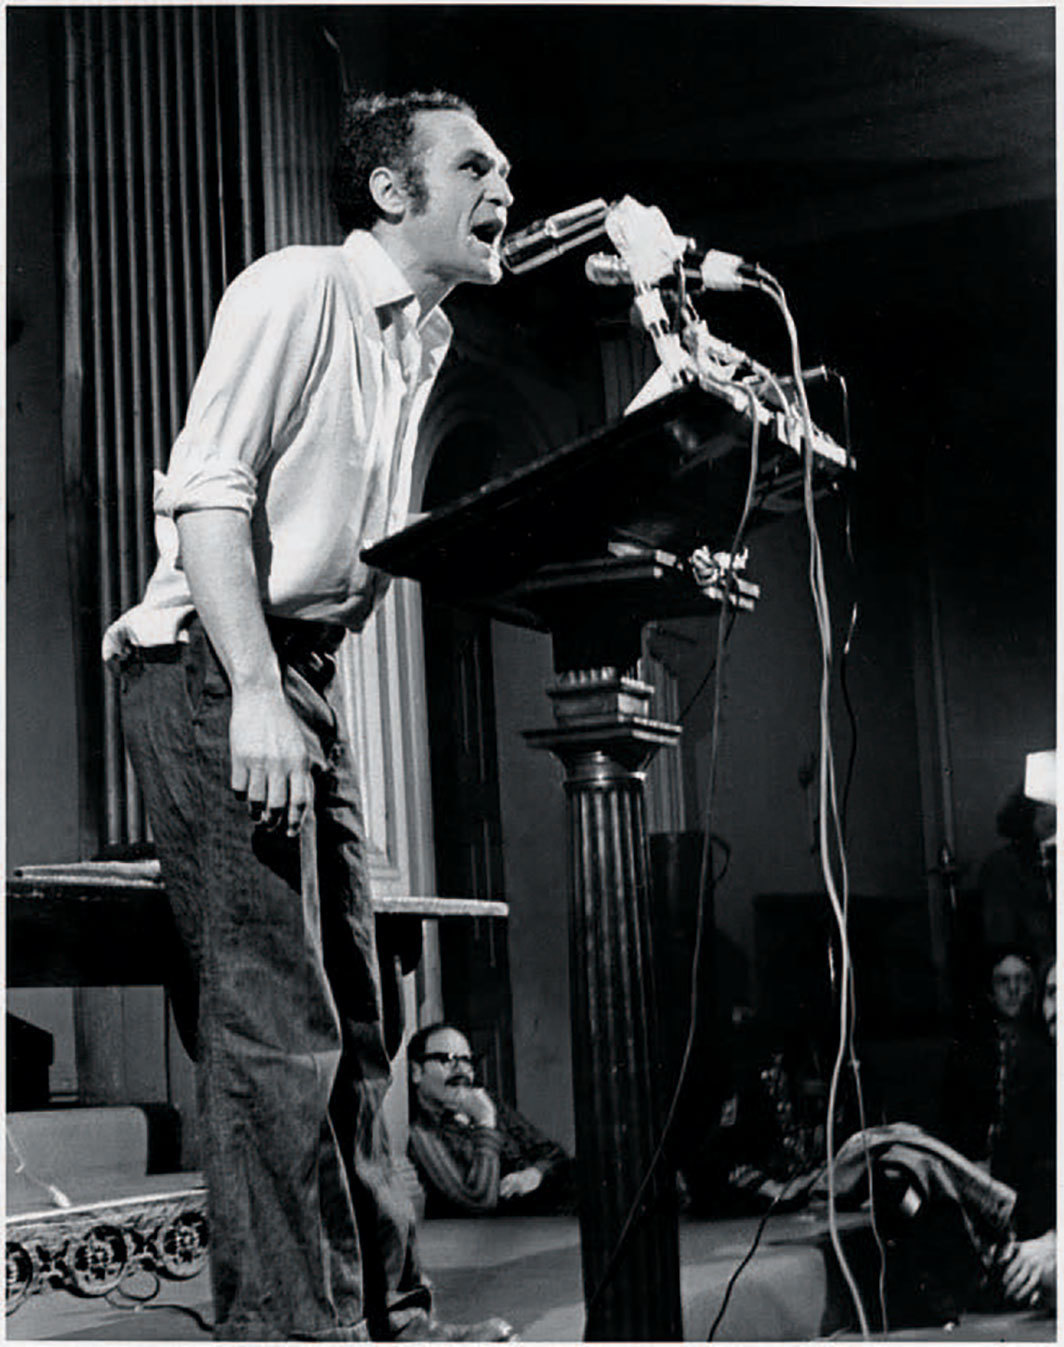 John Giorno giving a reading at St. Mark's Church, New York, April 28, 1974. Photo: Gianfranco Mantegna.